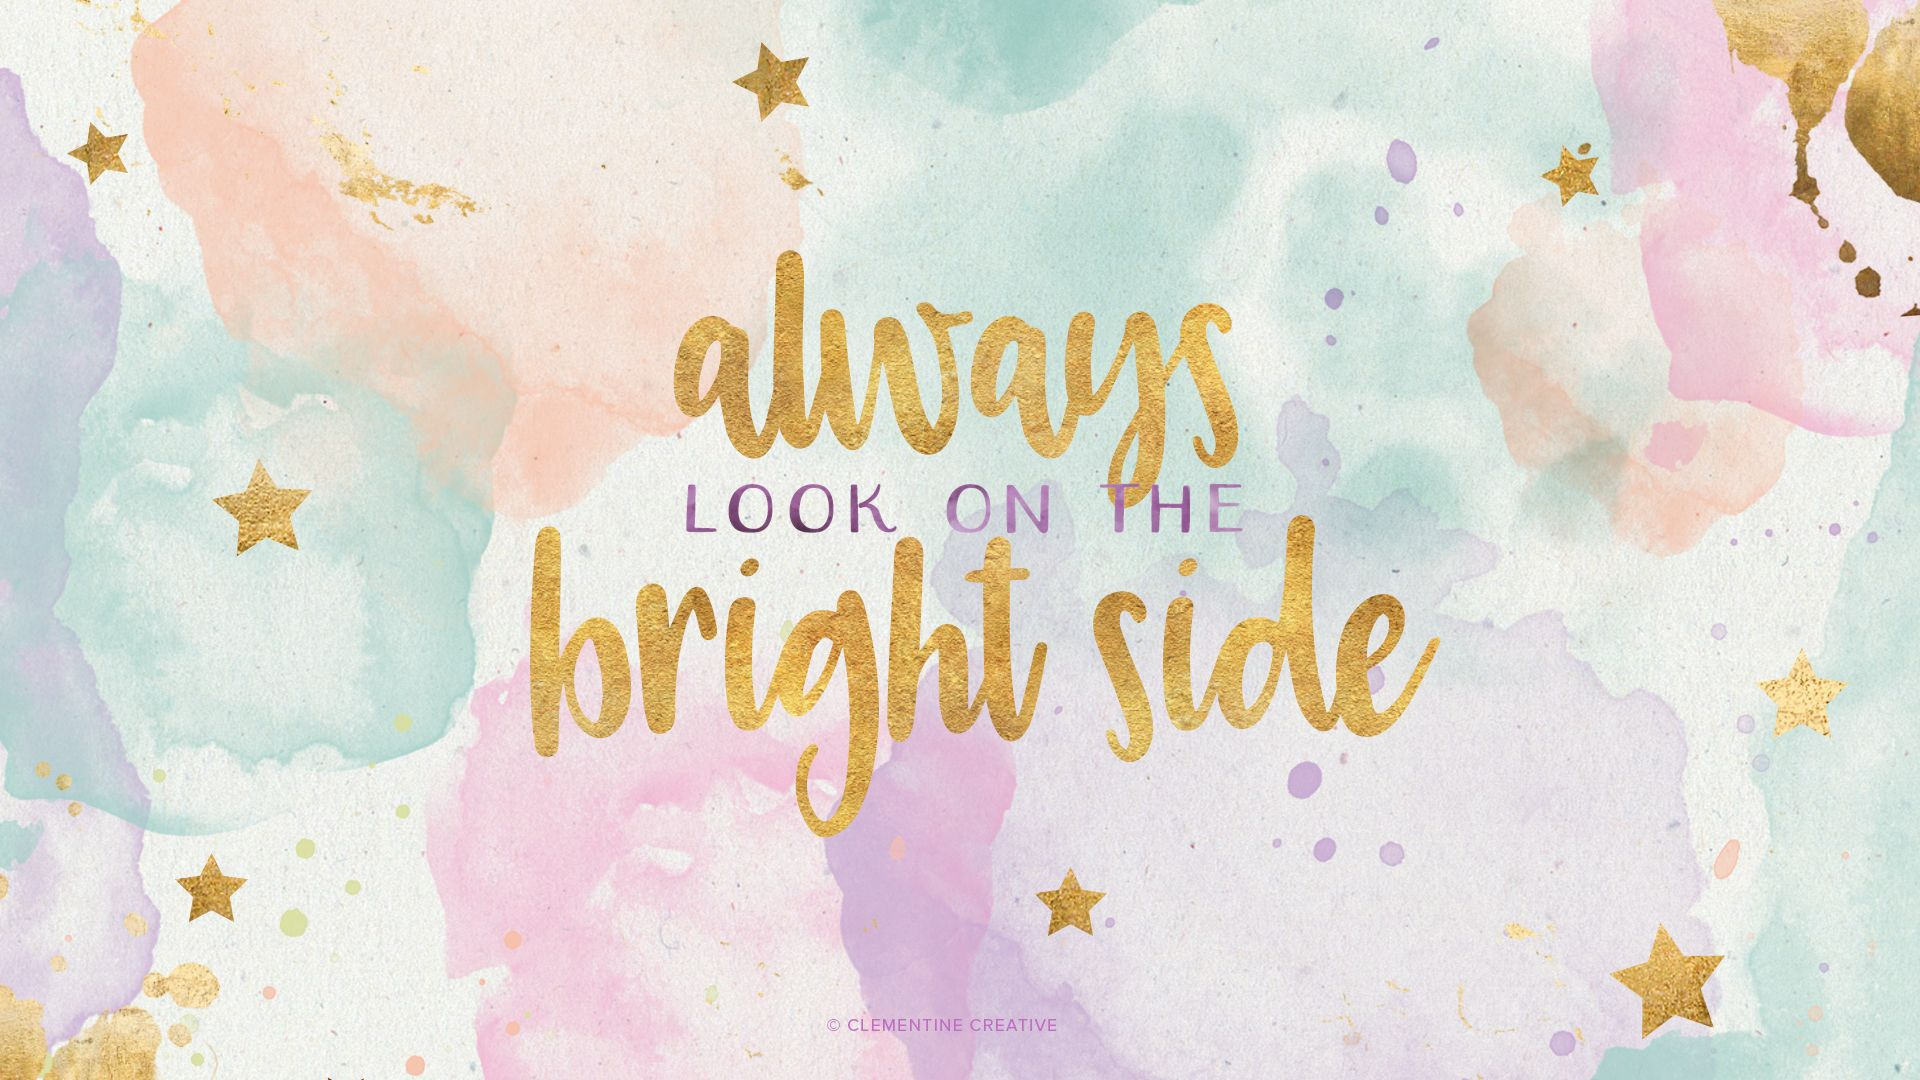 Wallpaper Always Look On The Bright Side Wallpaper Quotes